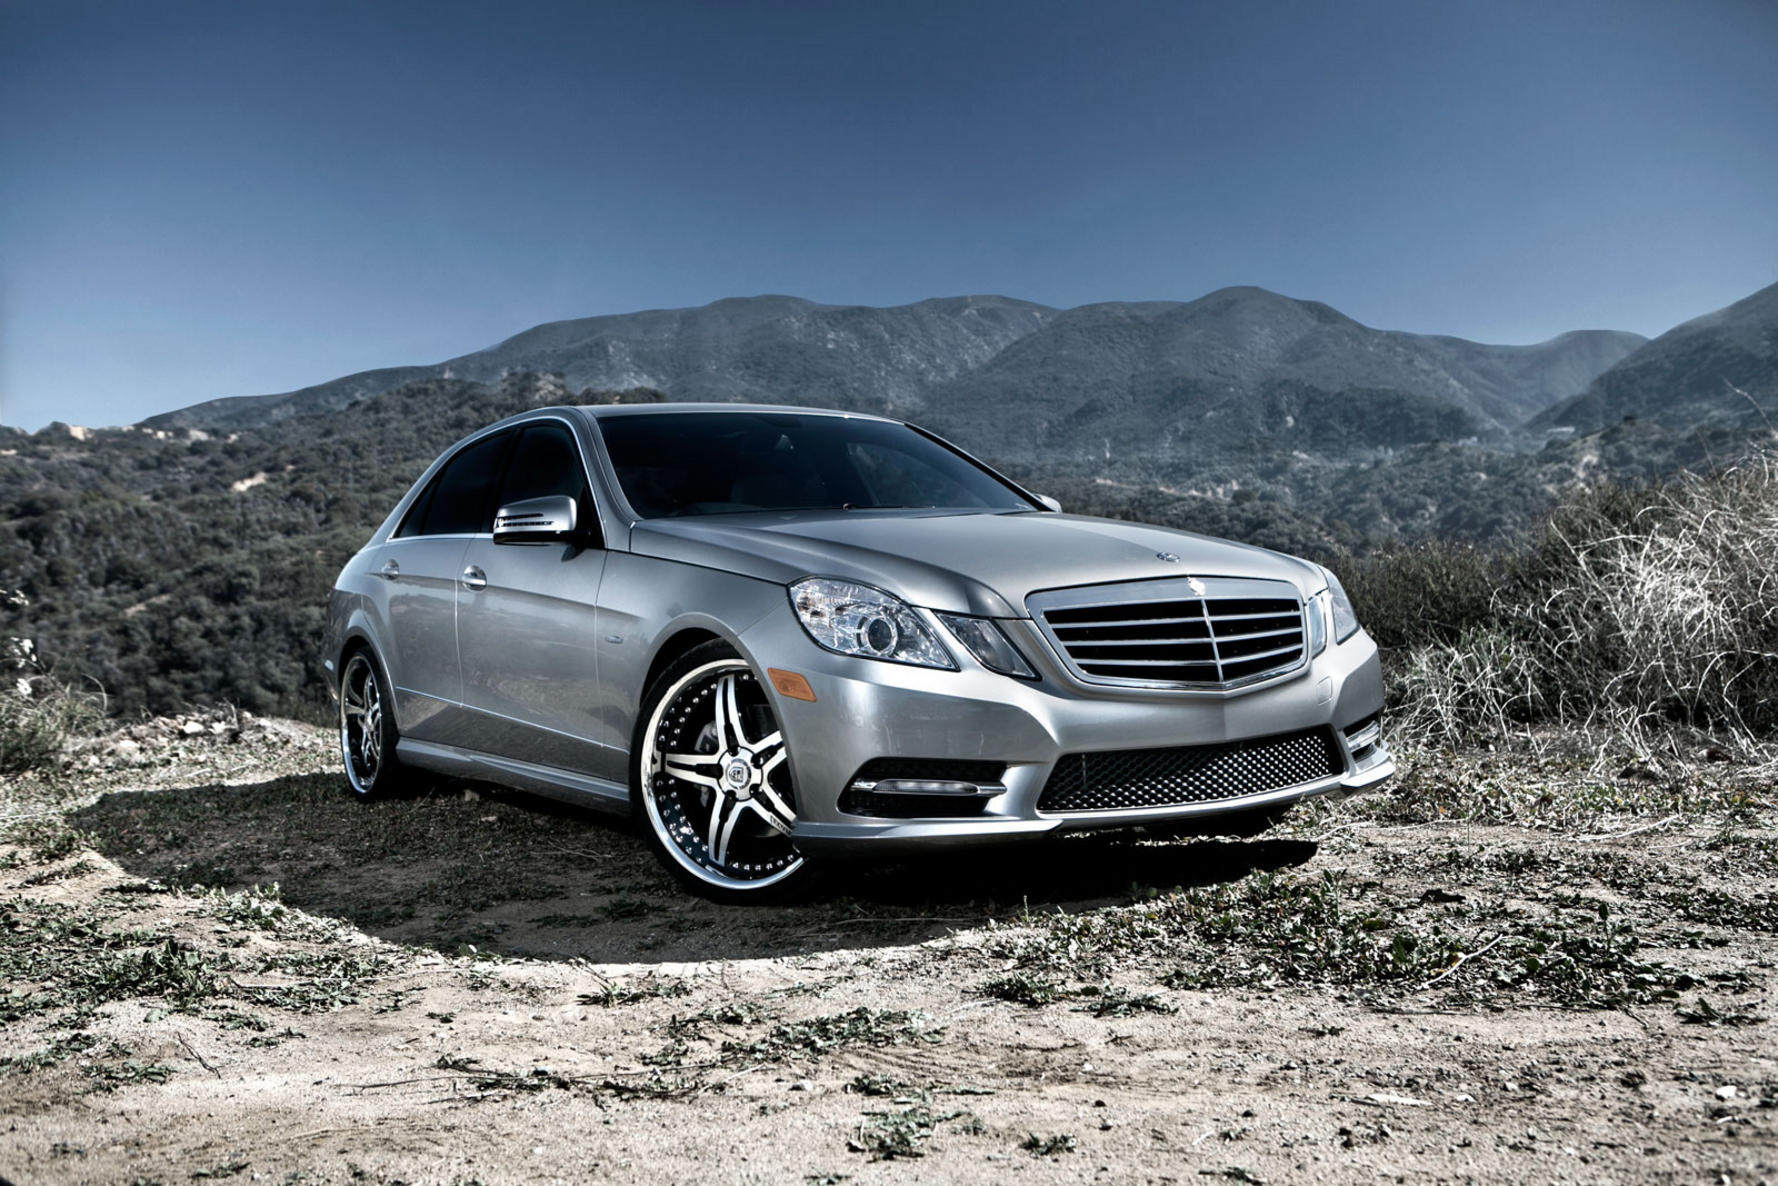 Mercedes benz recalls e350 and e550 units for airbag issue for 2012 mercedes benz e350 review